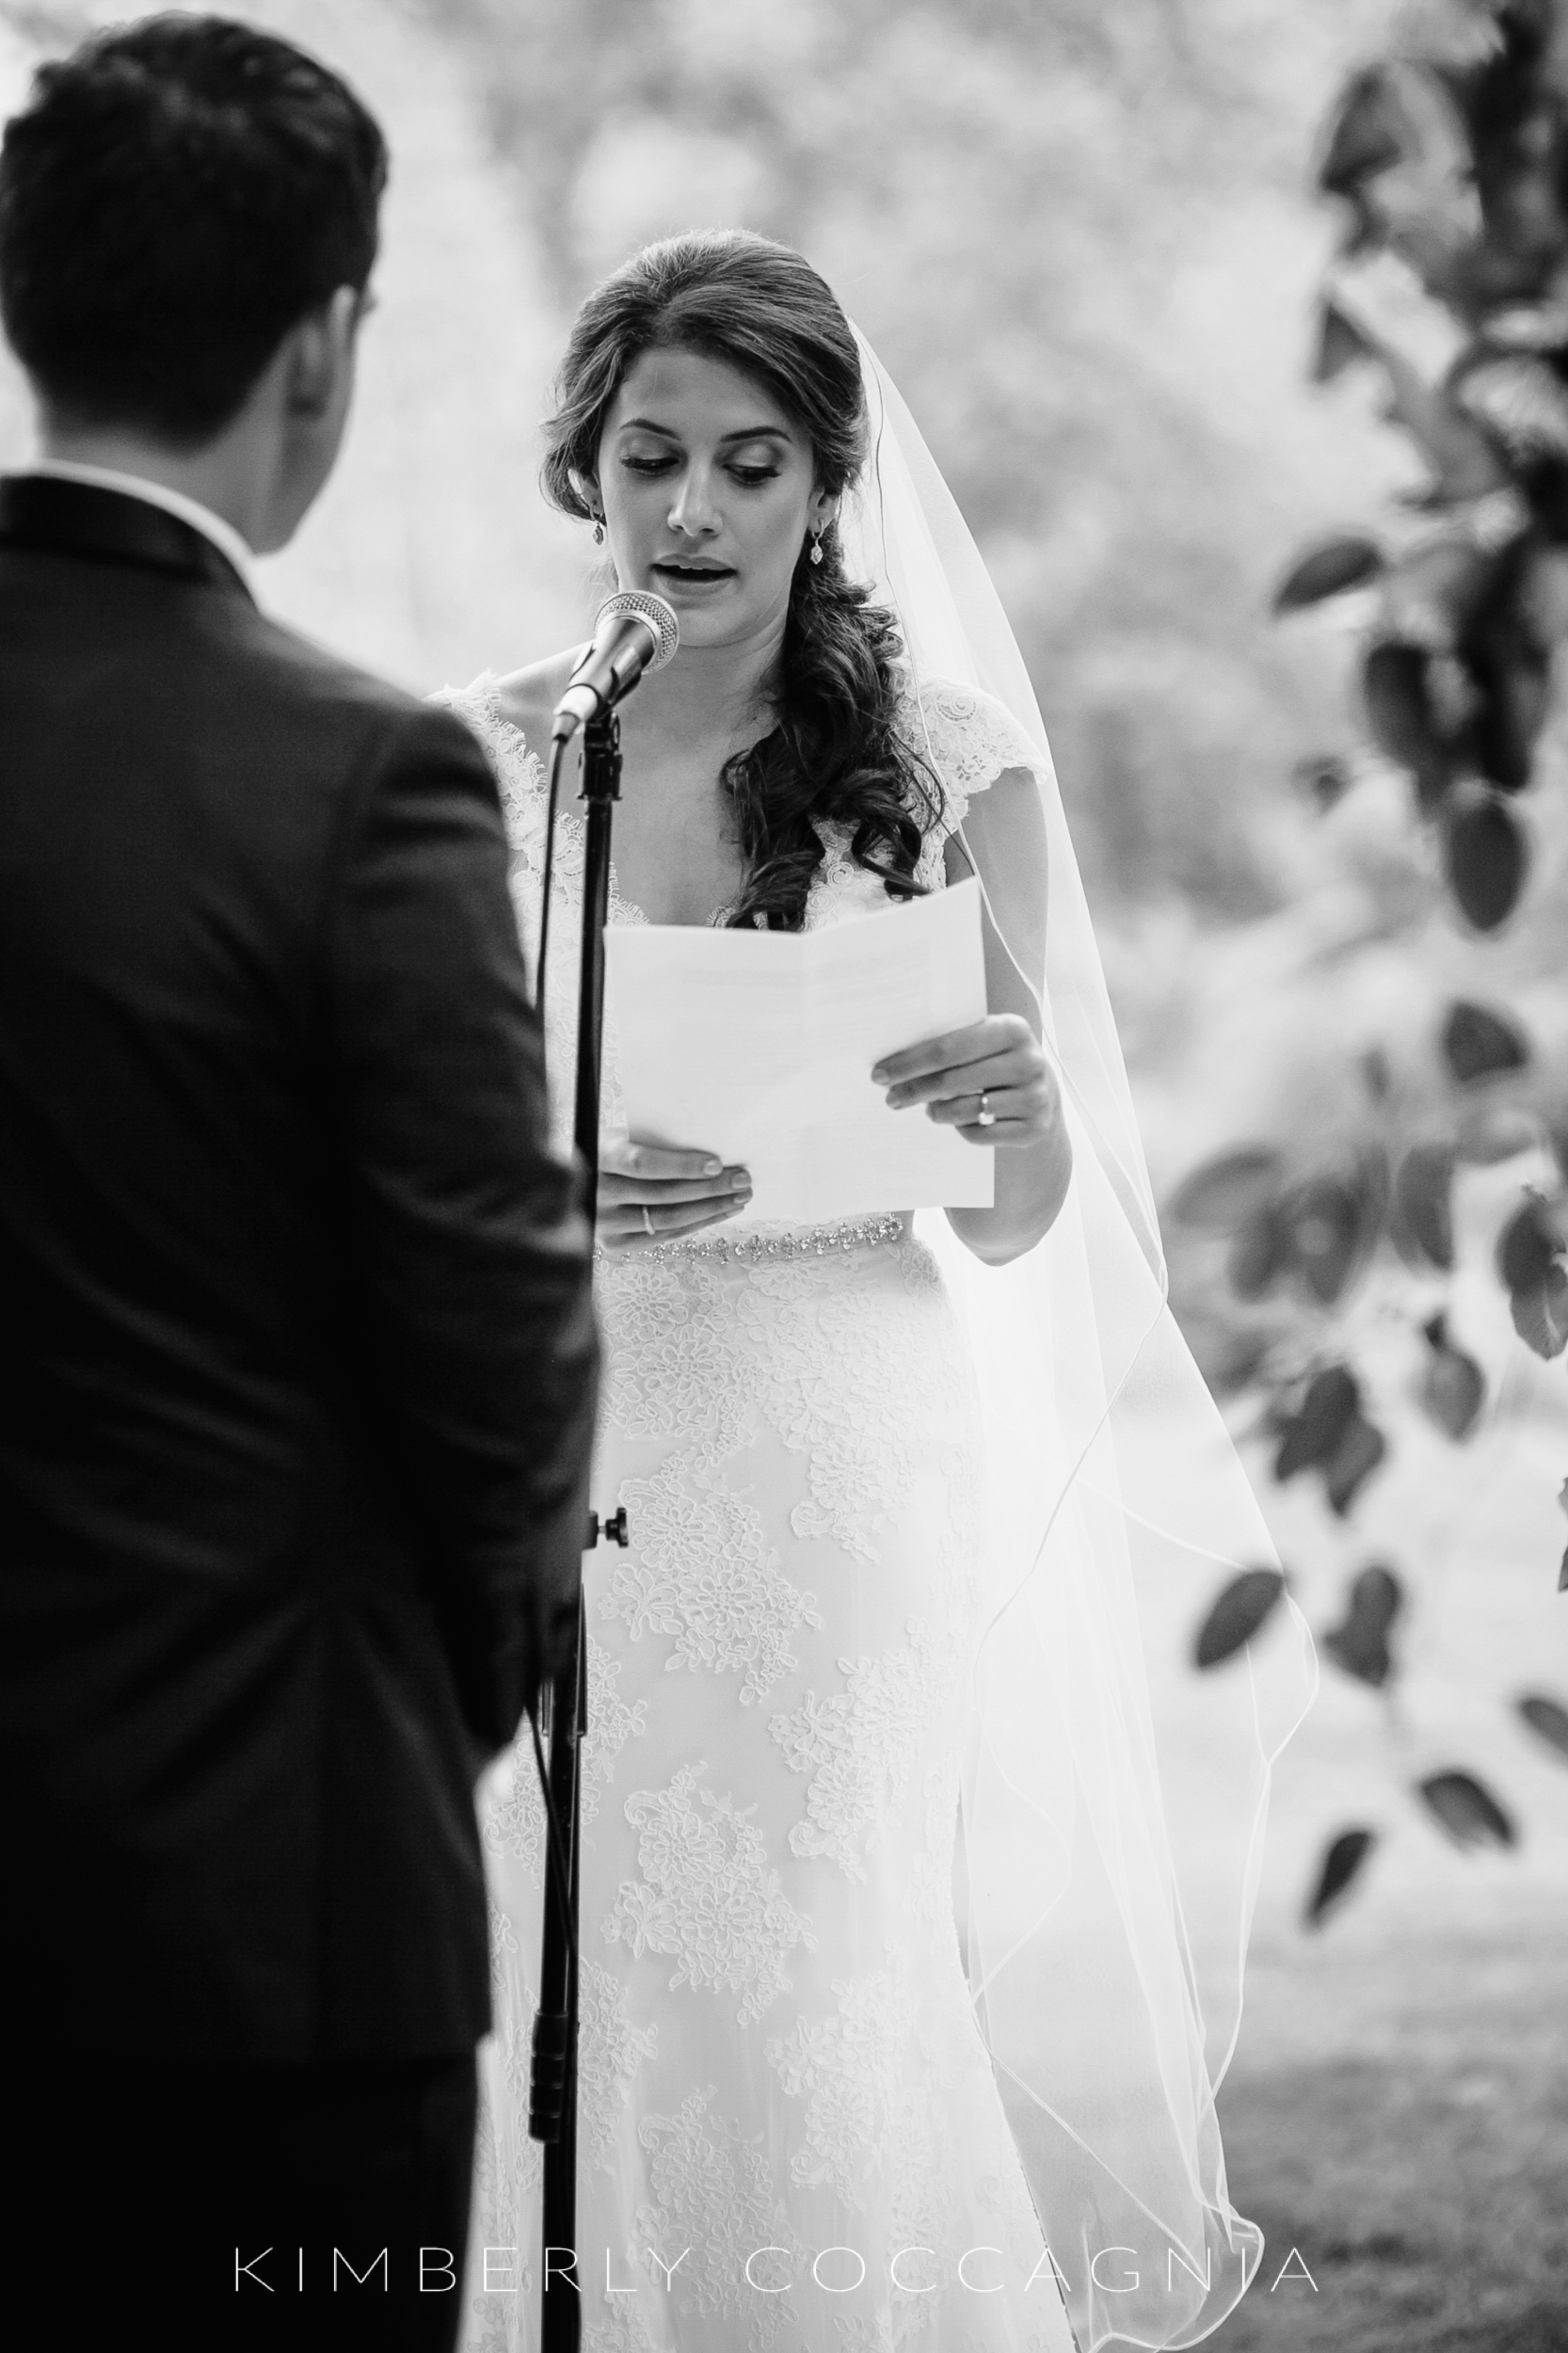 Kimberly+Coccagnia+Hudson+Valley+Wedding+Photographer-55.JPG